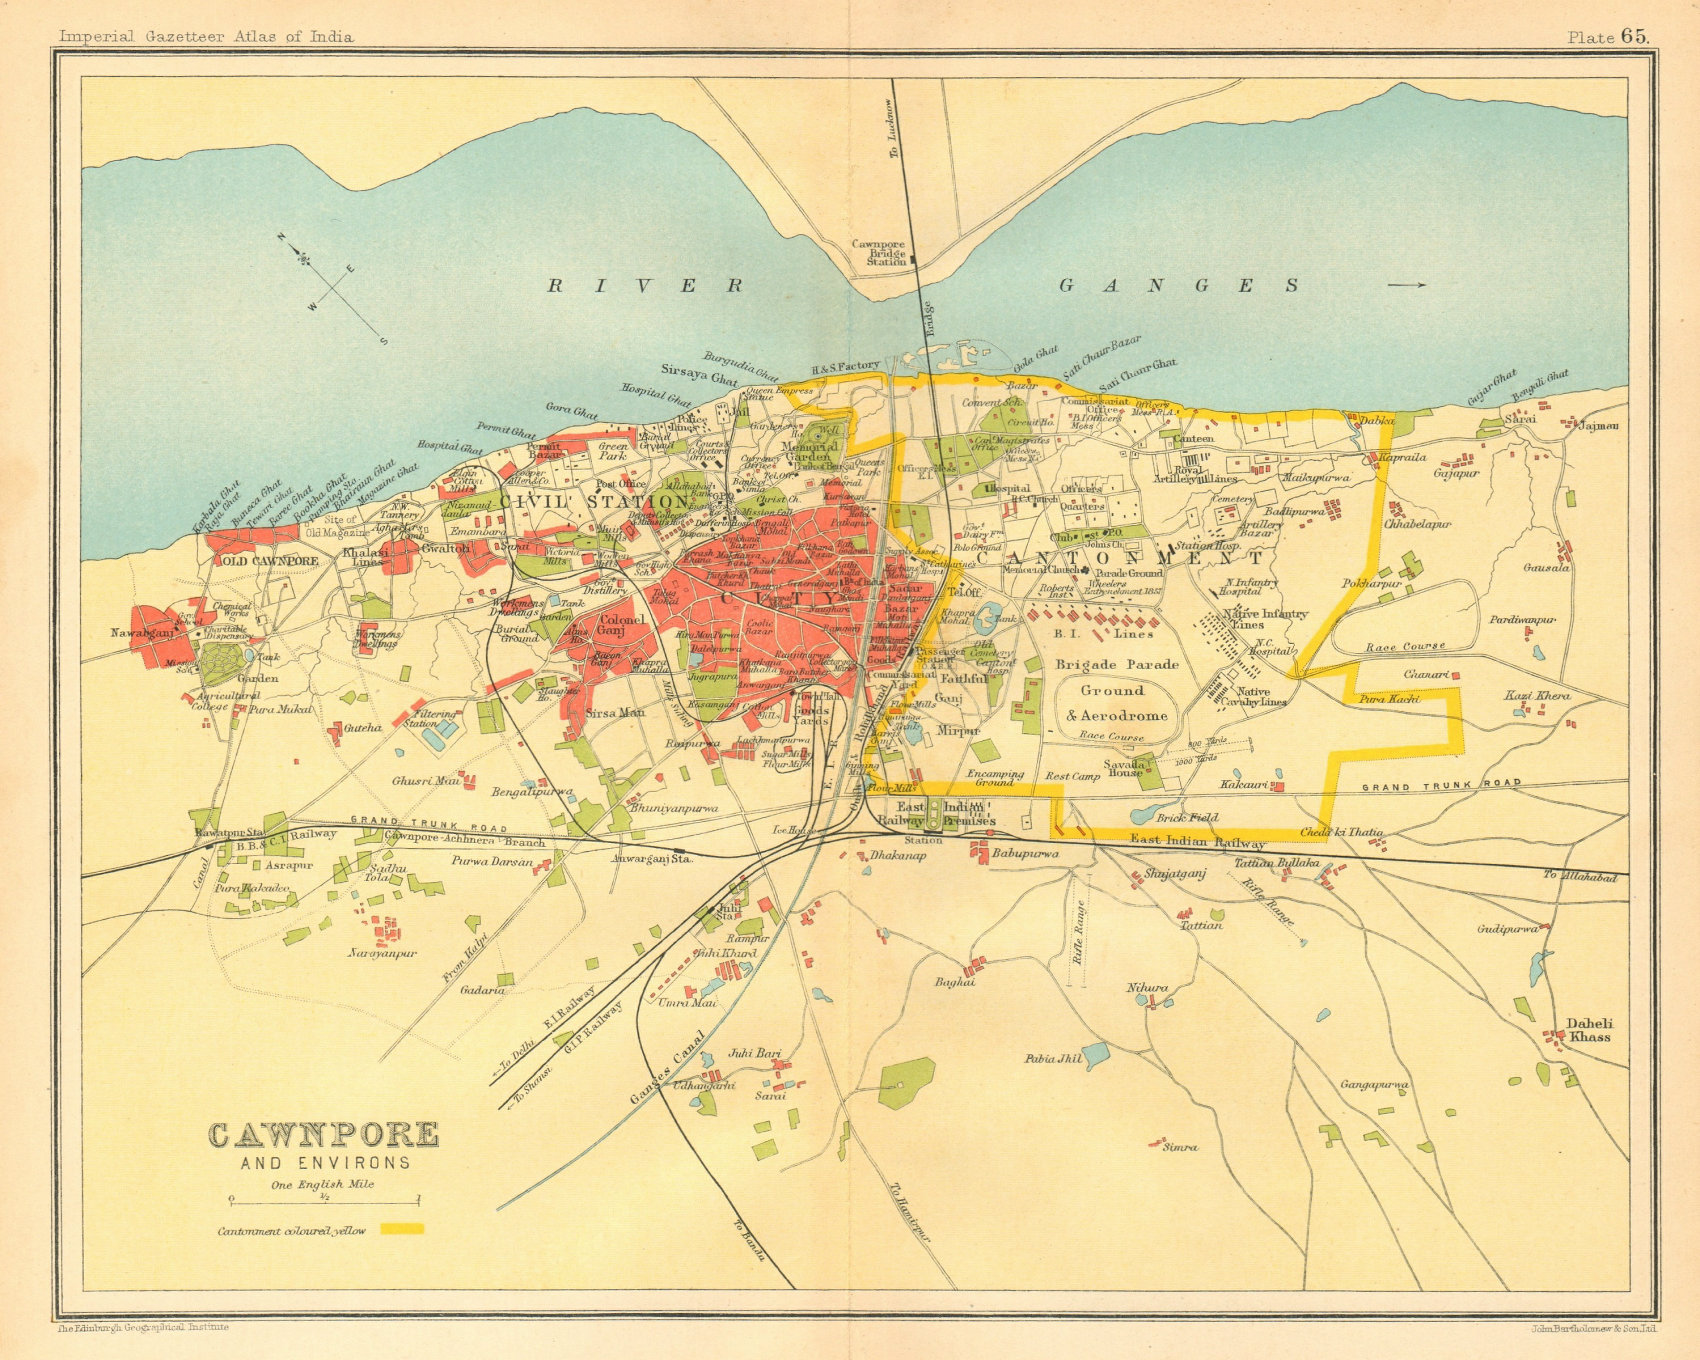 Associate Product Cawnpore/Kanpur town city plan. Key buildings Cantonment. British India 1931 map